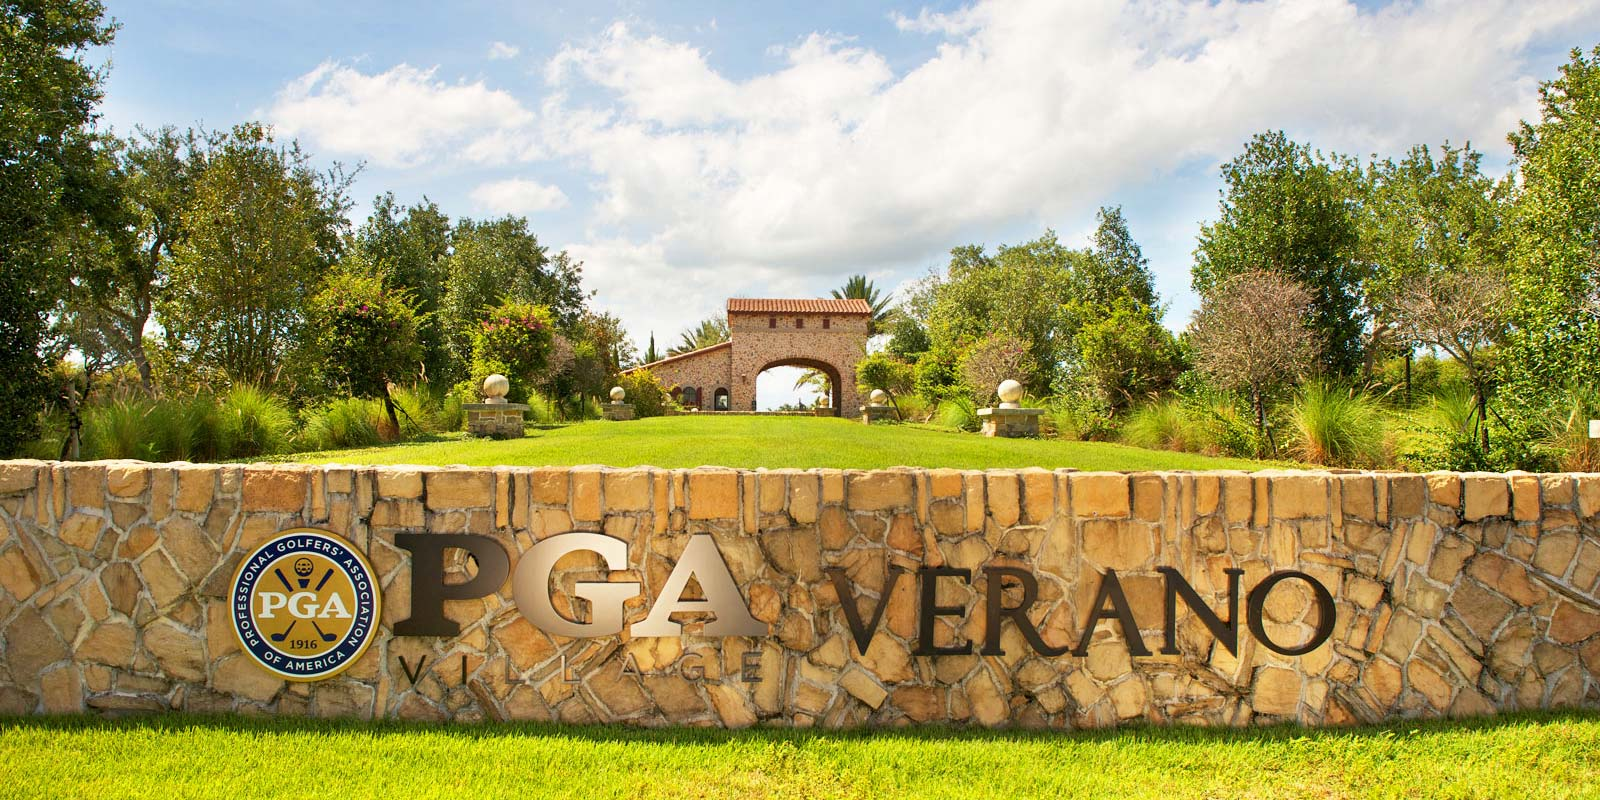 PGA Village Verano Product Shots